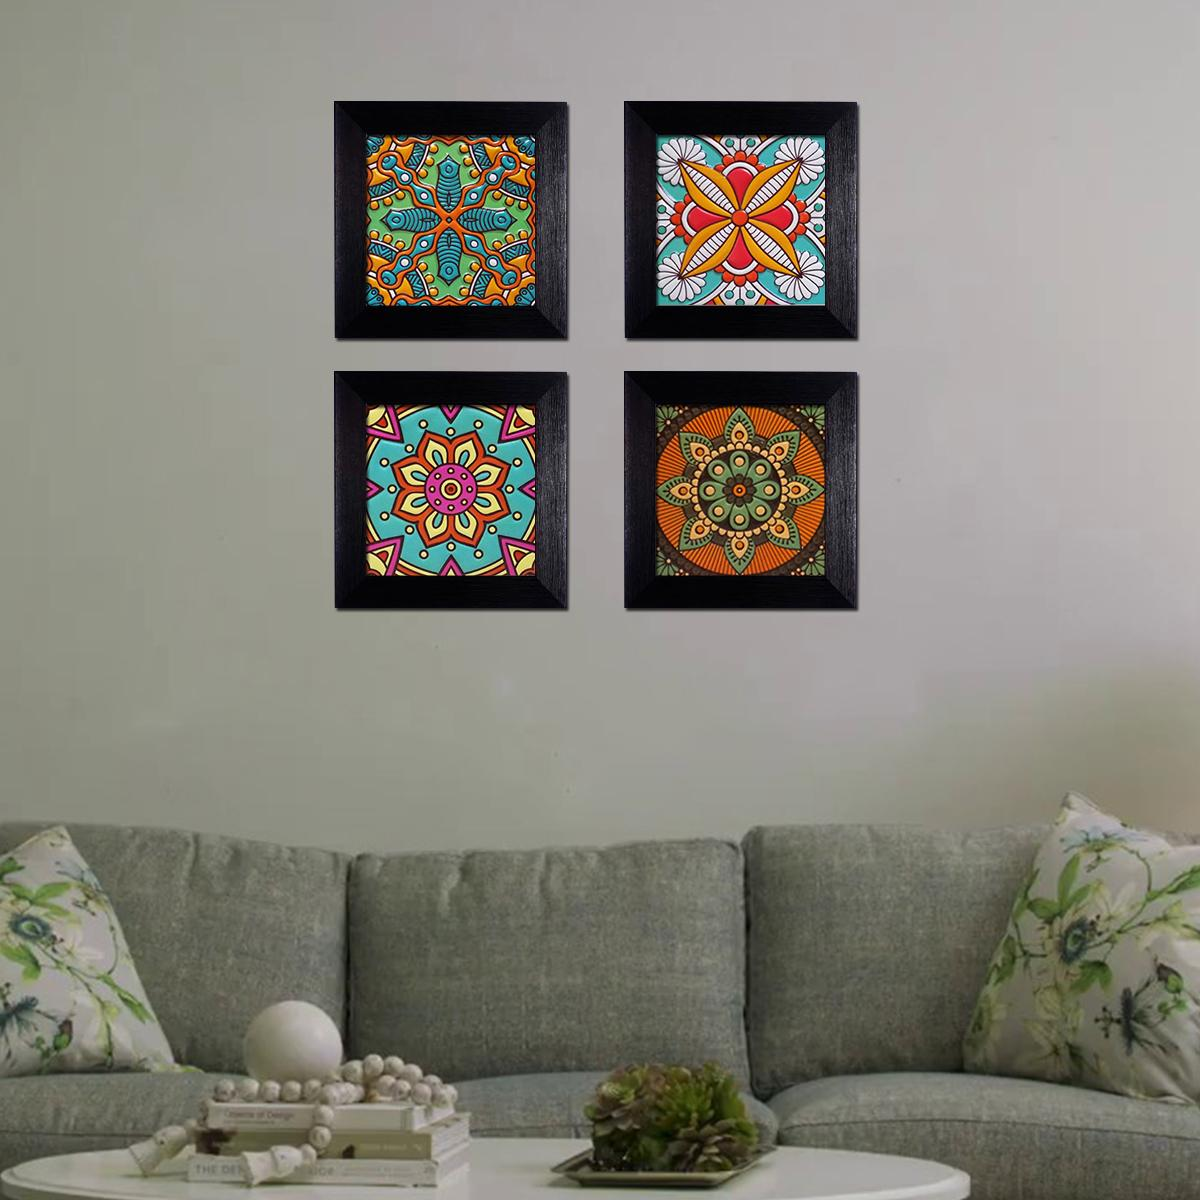 Wall Frames Set of 4 Wall Hanging Frames With Colorful Artwork Multi Color Wall Art Hangings